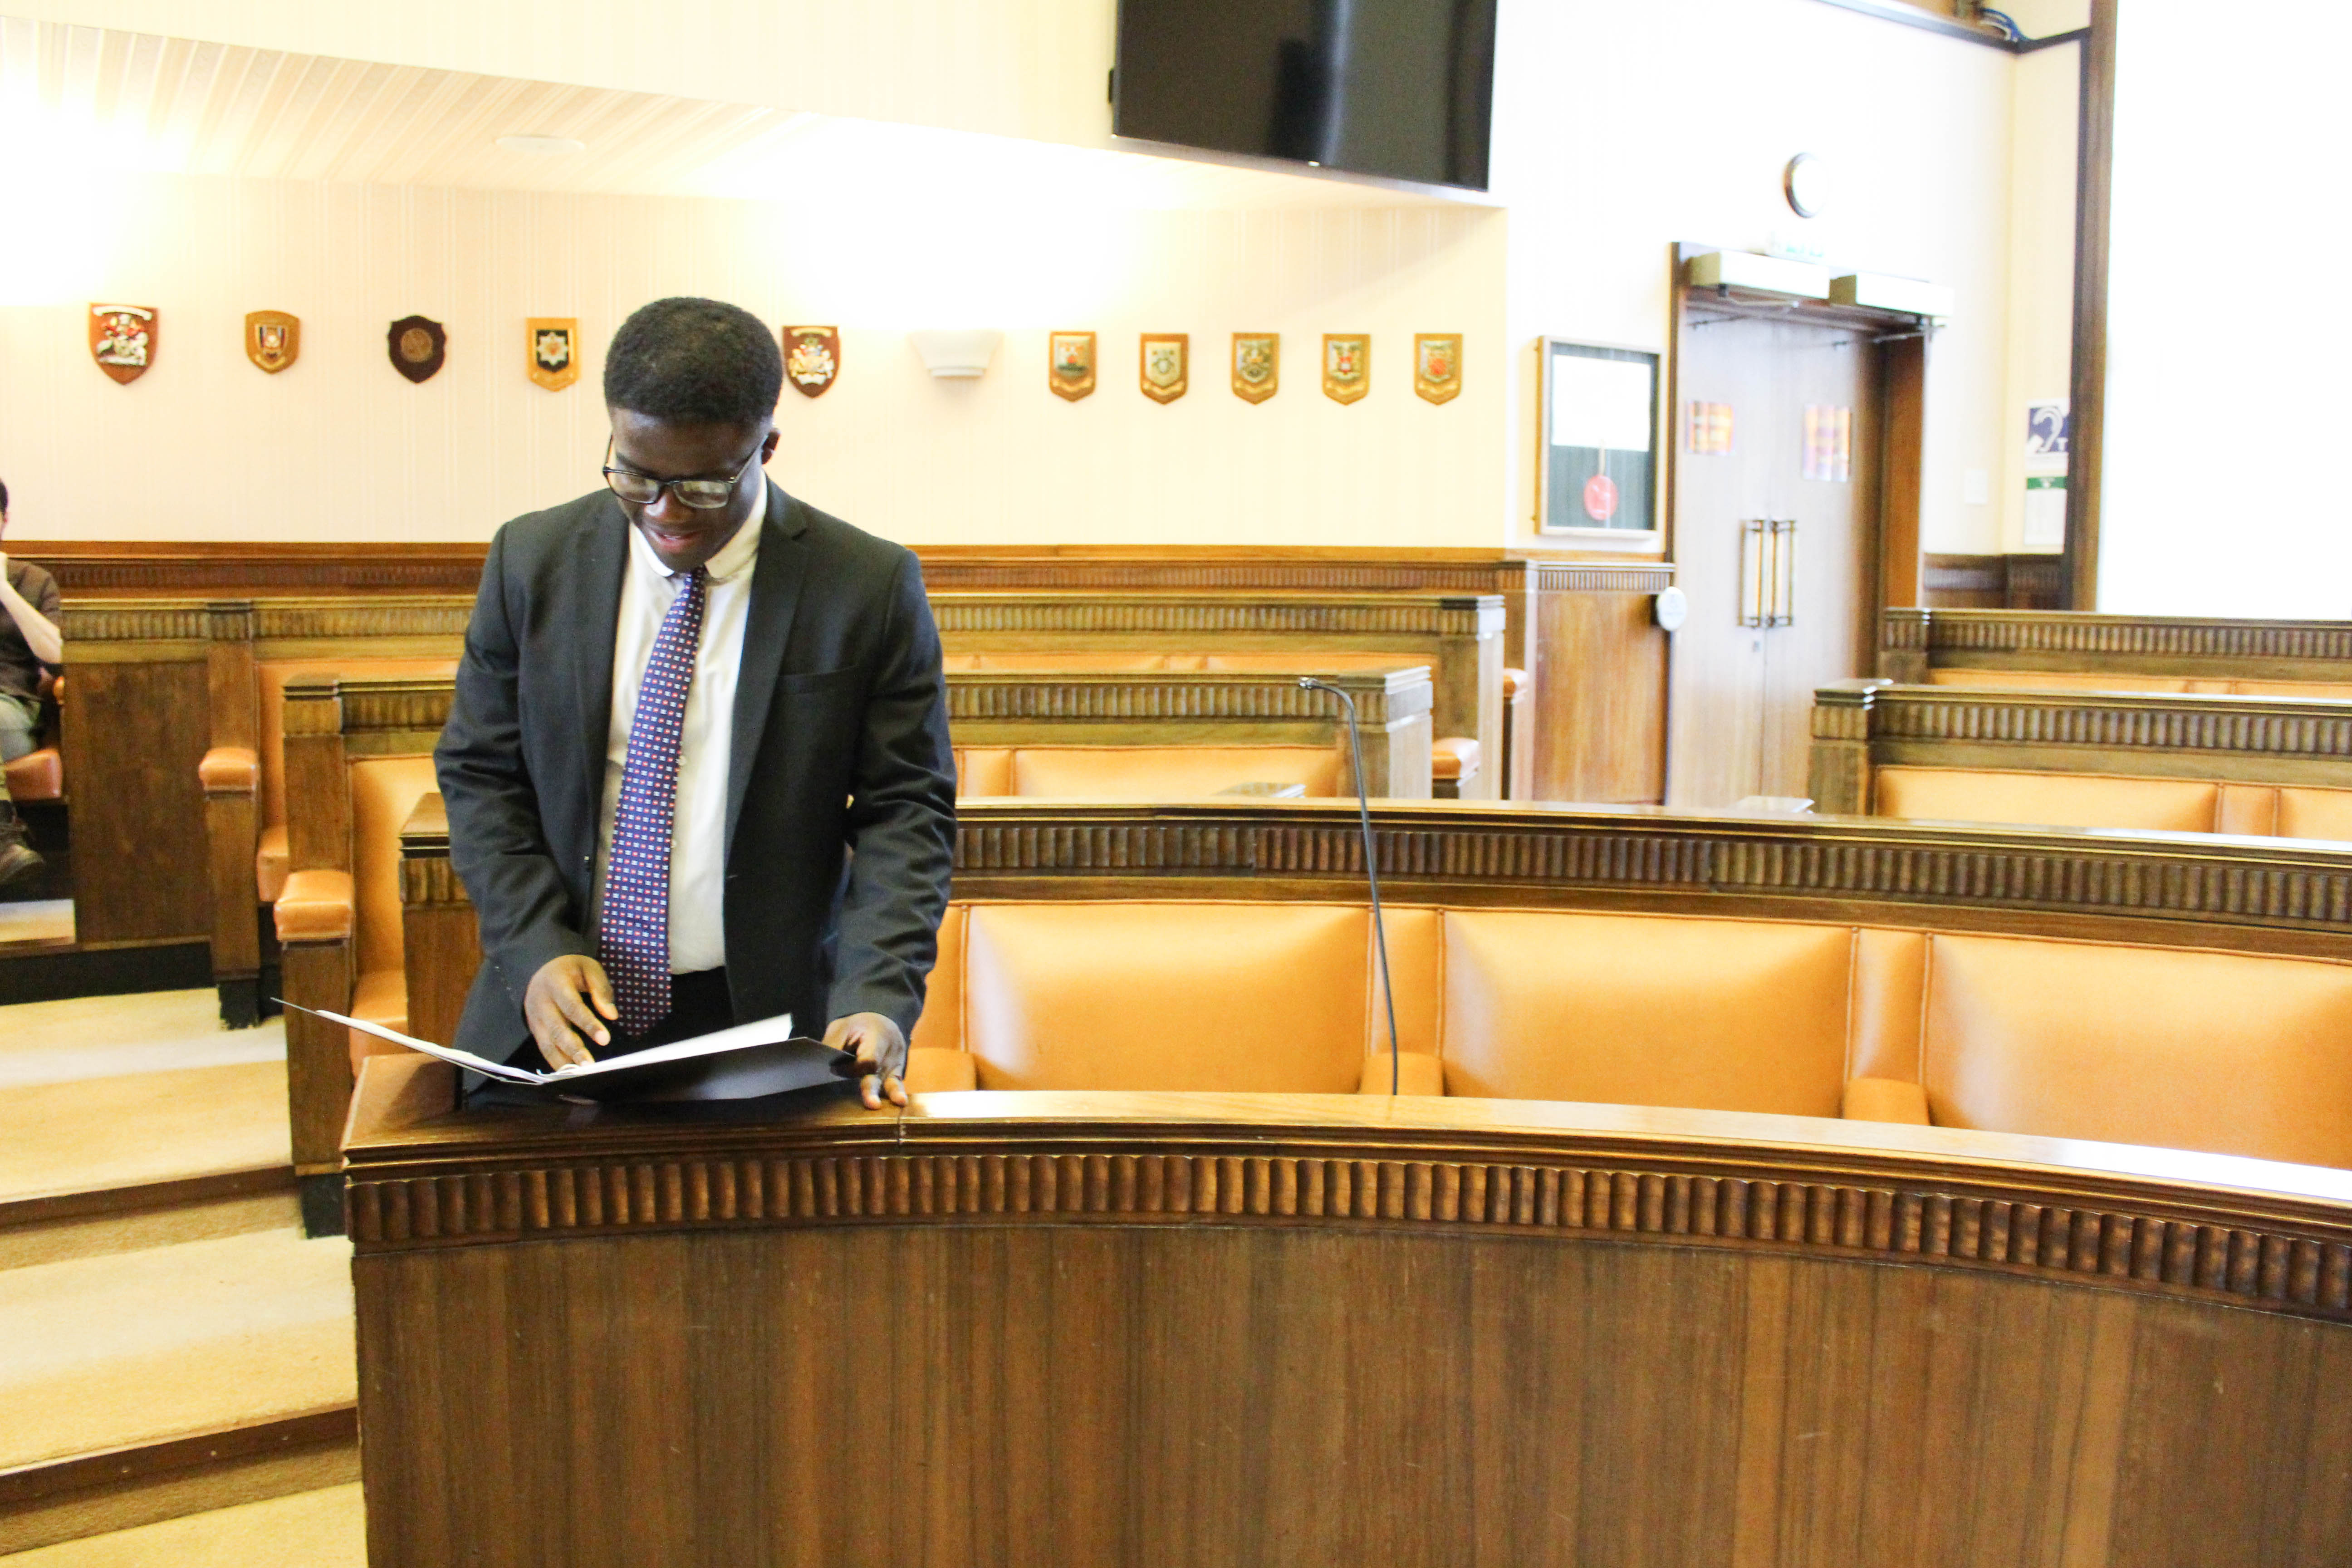 Image: Charles at the mooting